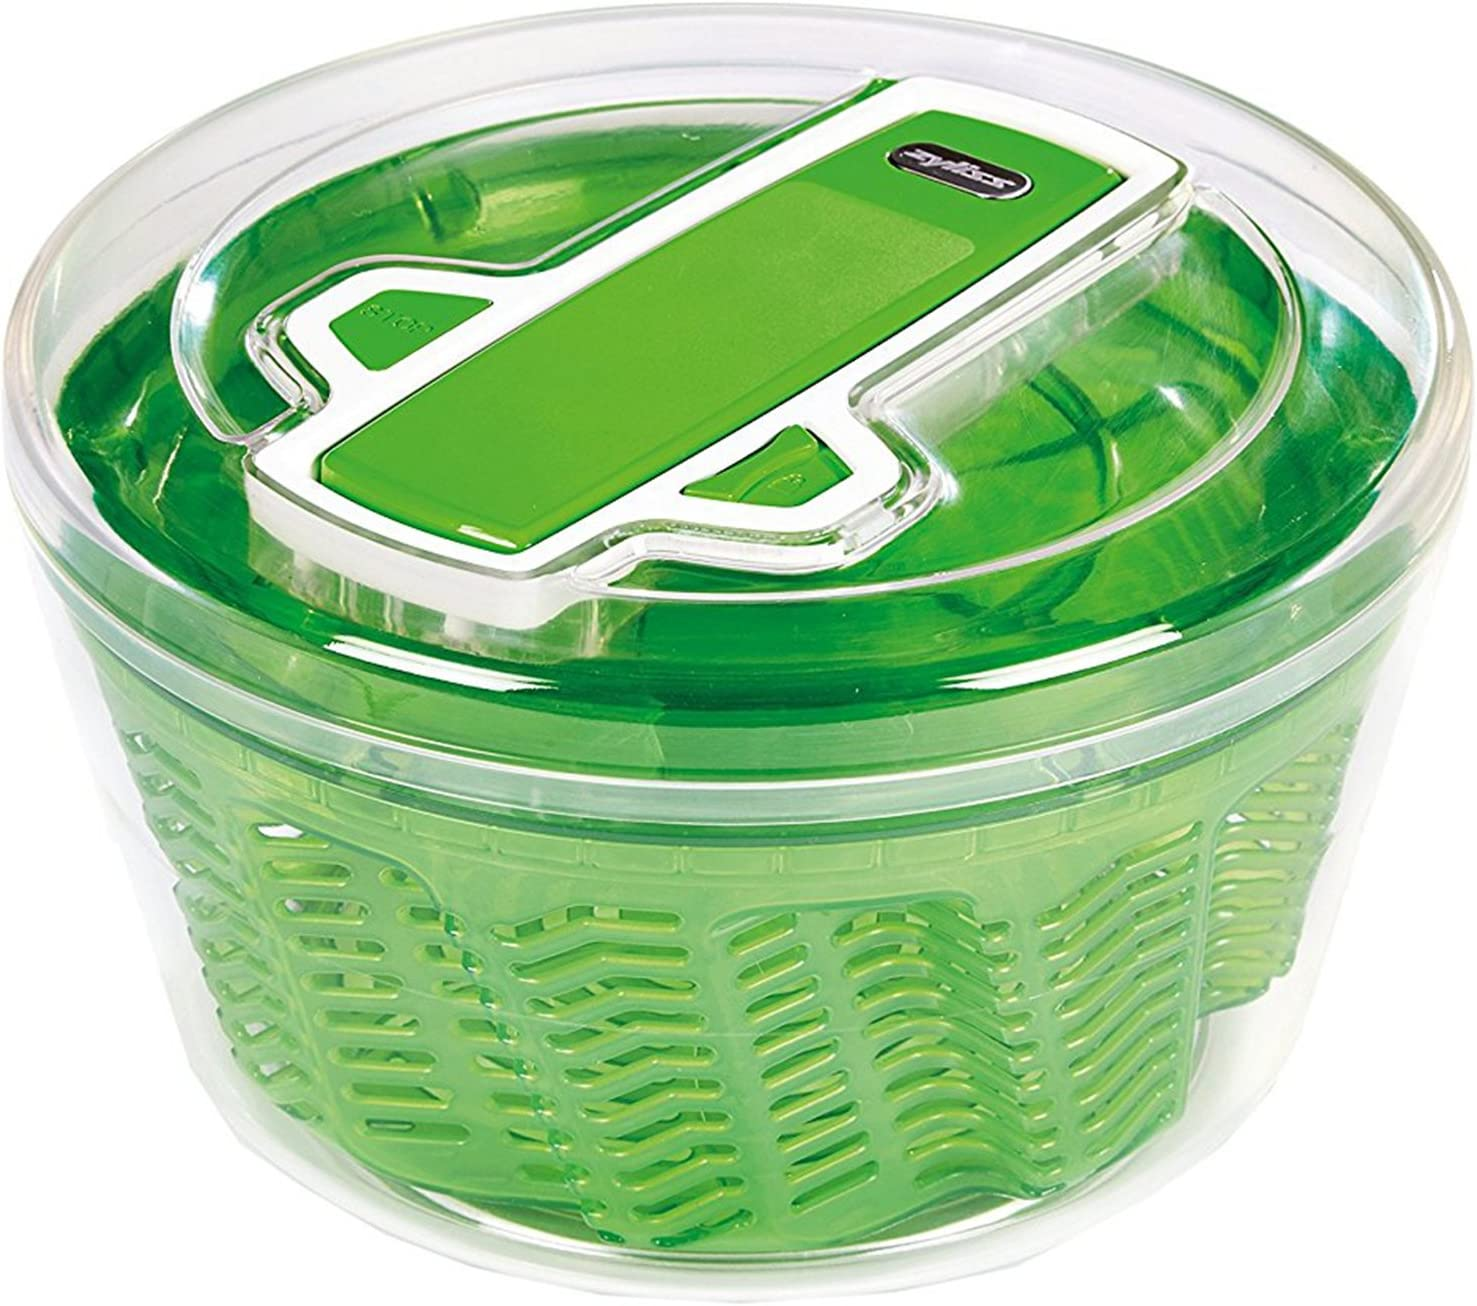 Ranking Ranking TOP13 TOP1 Zyliss E940005 Swift Dry Salad Large Spinner 11-1 Green Youth